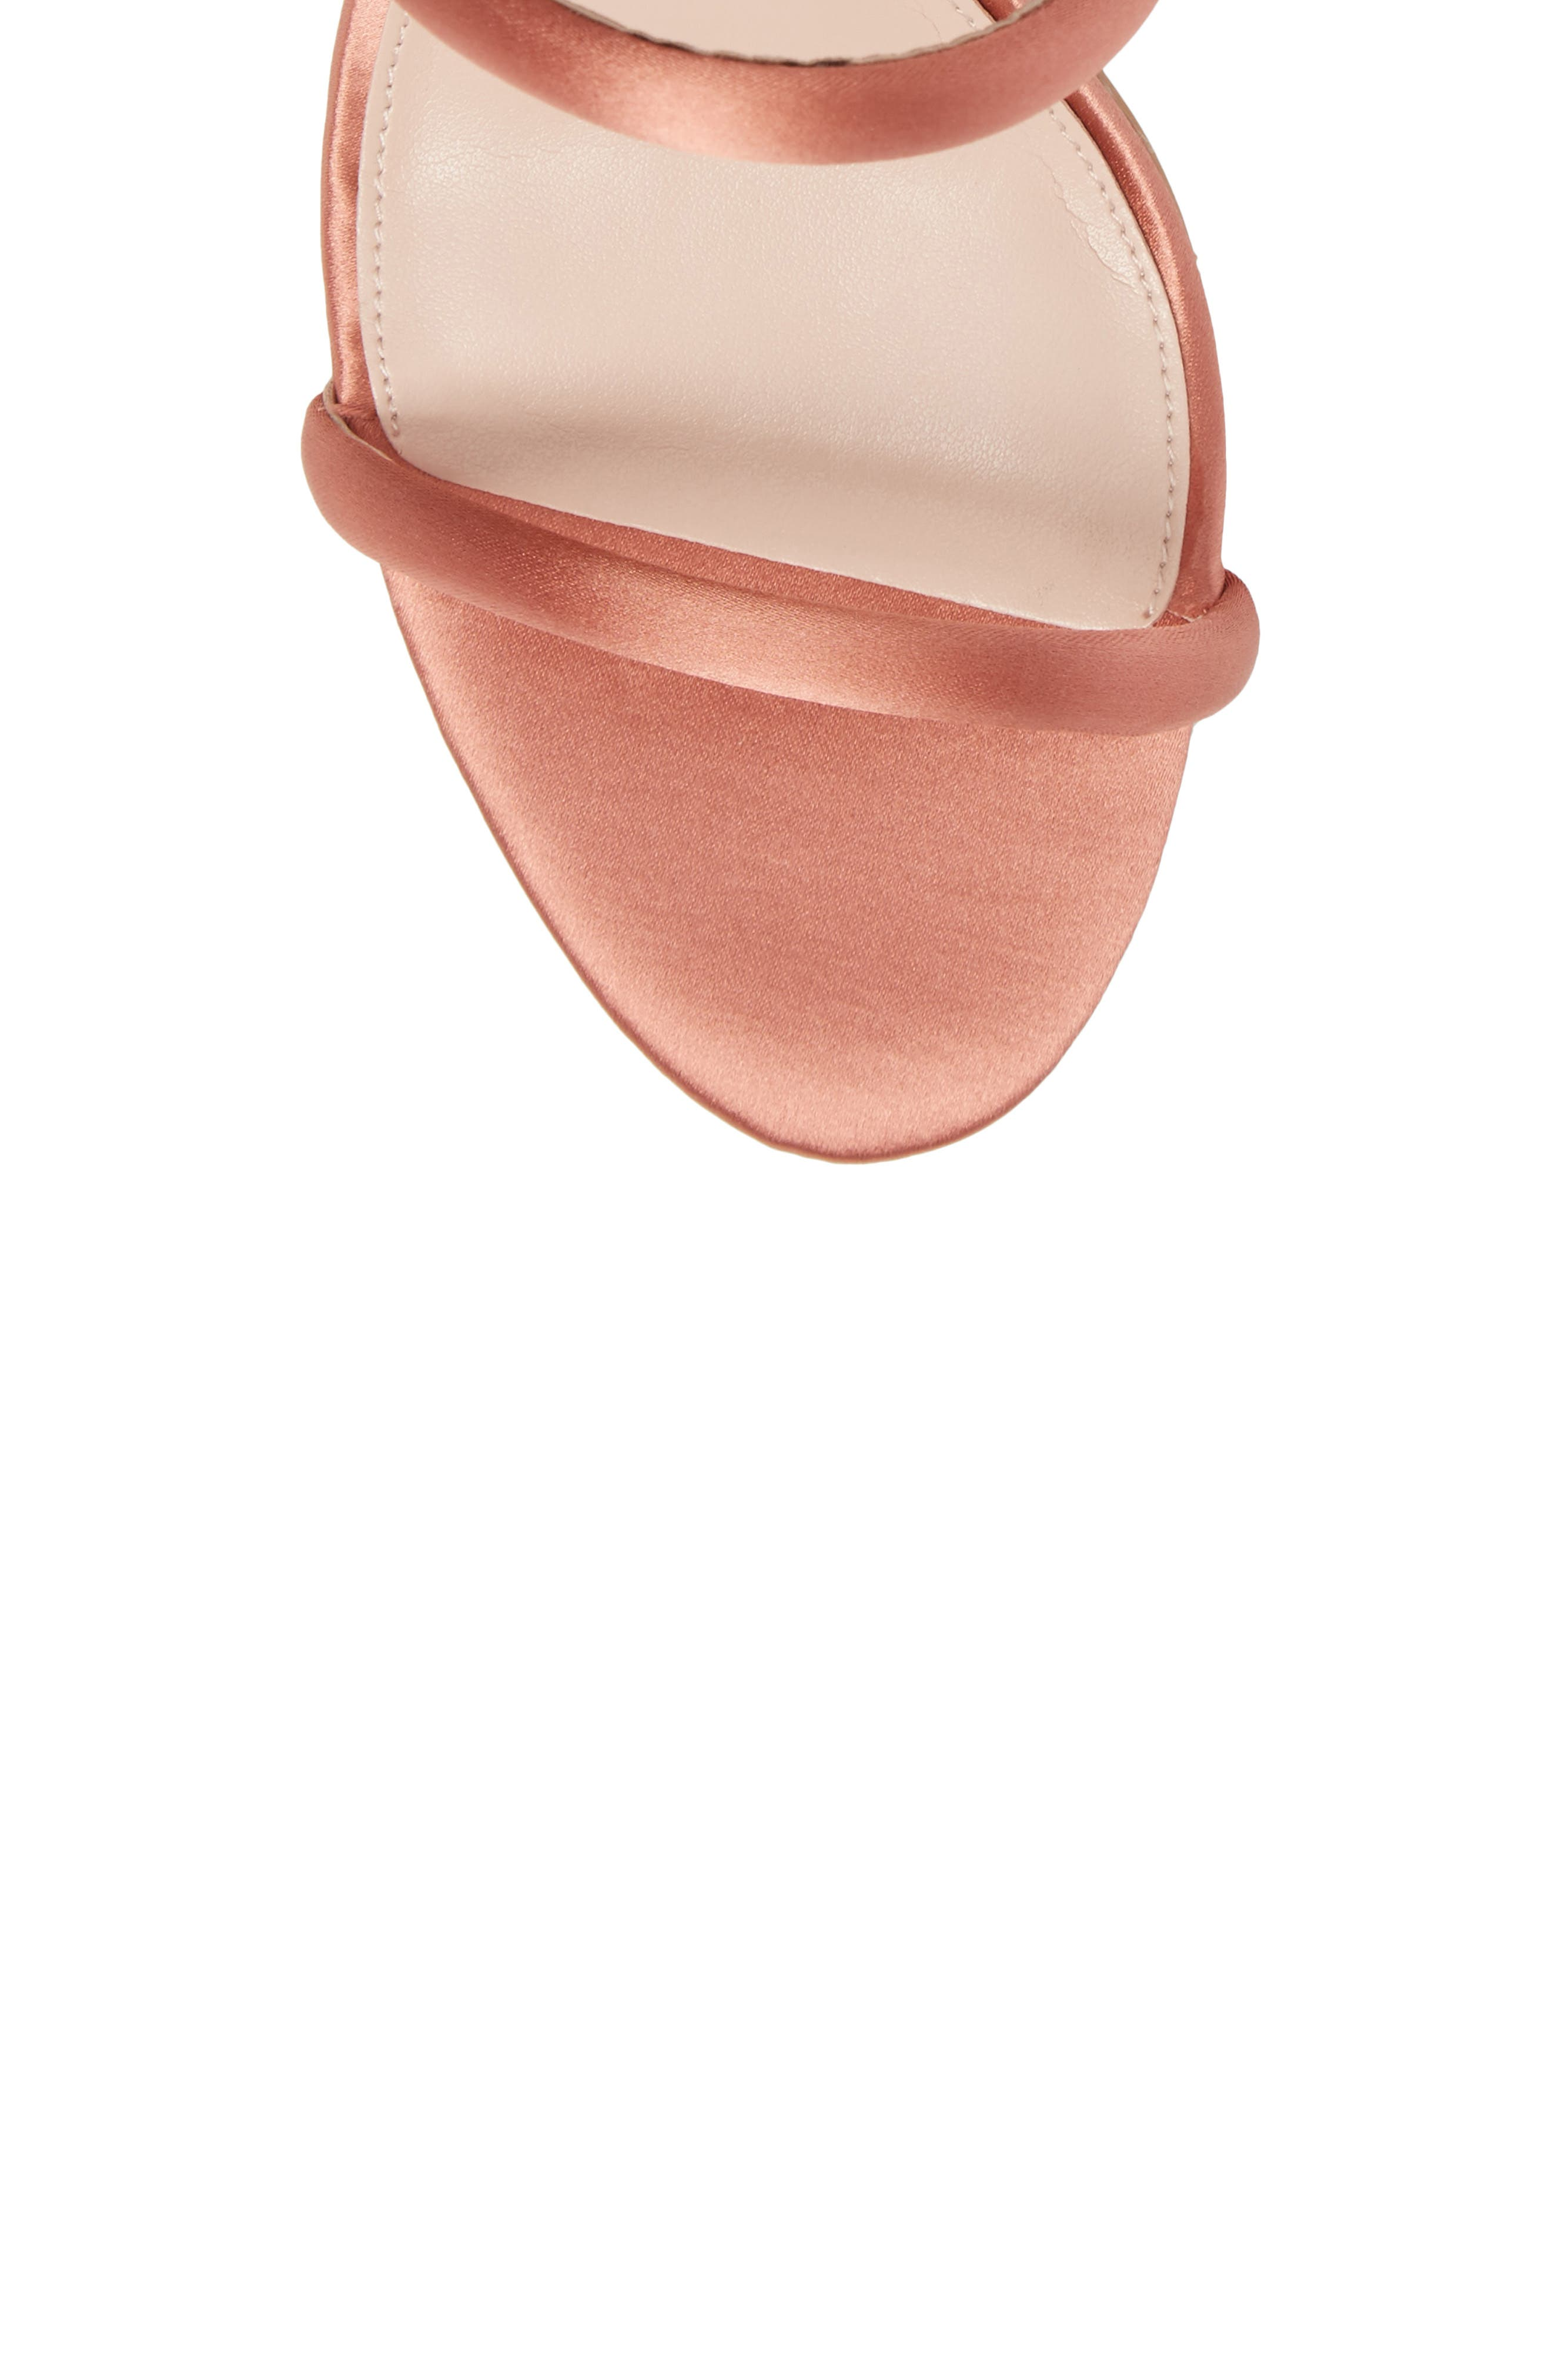 Joia Ankle Wrap Sandal,                             Alternate thumbnail 5, color,                             Dusty Rose Fabric